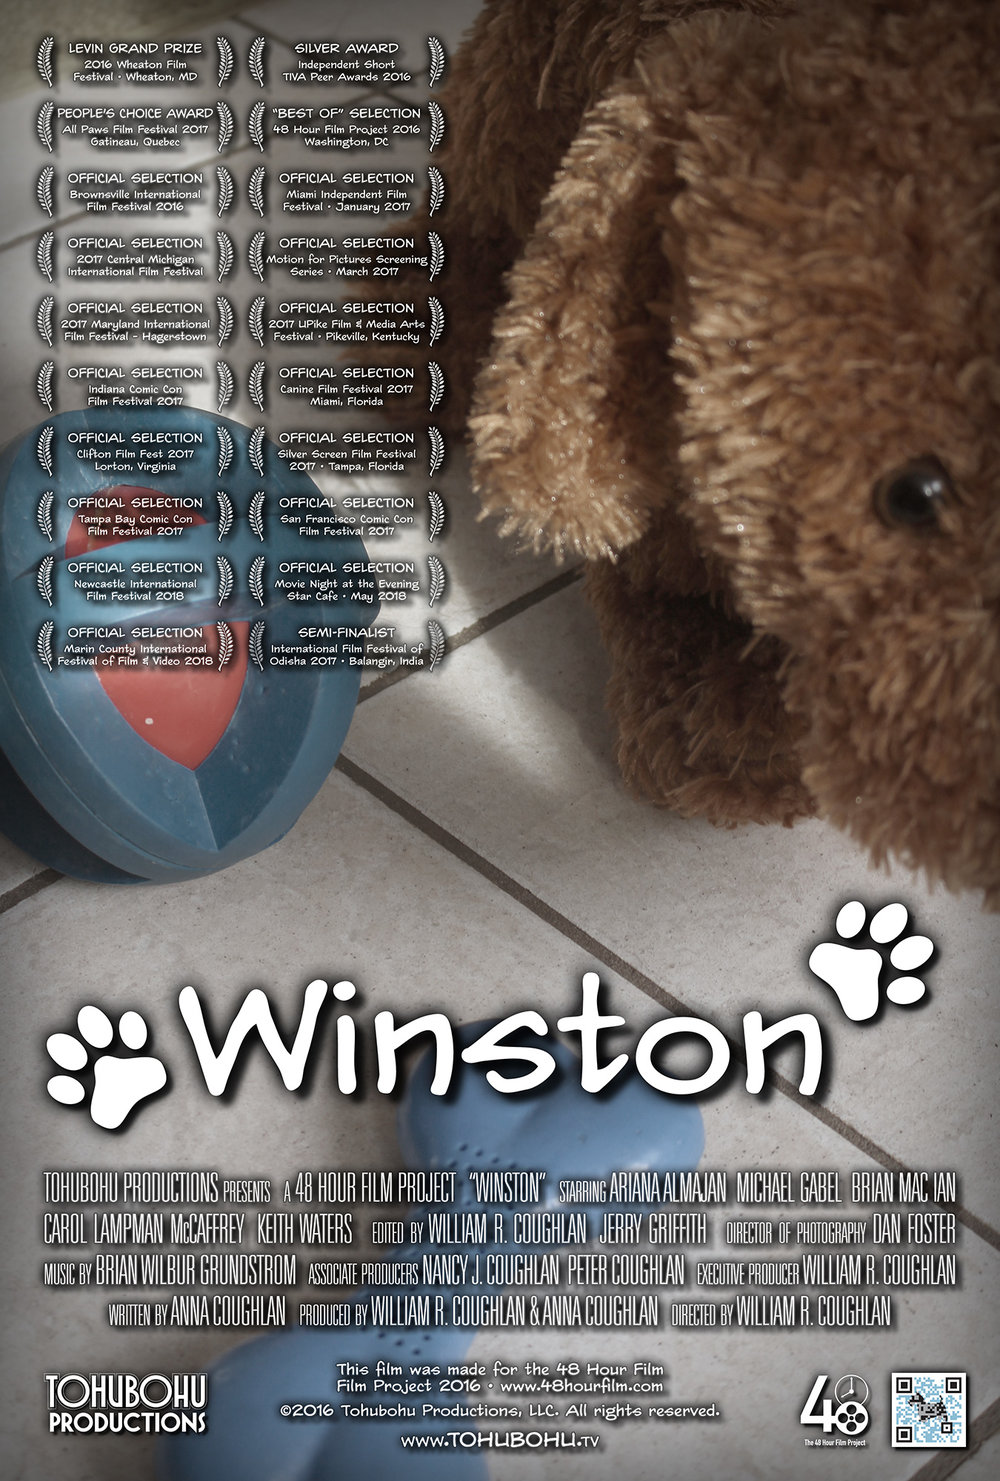 "Winston - 2016 · 9:27 · written by Anna Coughlan · produced by William R. Coughlan & Anna Coughlan · directed by William R. CoughlanAlina, eager for a promotion at work, agrees to take on what appears to be a straightforward task: Housesitting and taking care of her boss Sybil's precious dog, Winston. But confusion sets in when Alina arrives at the home only to discover that ""Winston"" is in fact a stuffed animal — leading her to question both her boss's motives and her mental state.After an extraordinarily successful slate of films for 2015, Tohubohu returned to the 48 Hour Film Project in 2016 with ""Winston,"" a lighthearted animal film, for which ""Tex: Wisdom of the Old West"" co-screenwriter Anna Coughlan took on solo scripting duties (as well as co-producing). The film was produced over the weekend of April 29th through May 1st, 2016, and premiered at the AFI Silver Theatre on Saturday, May 7th."